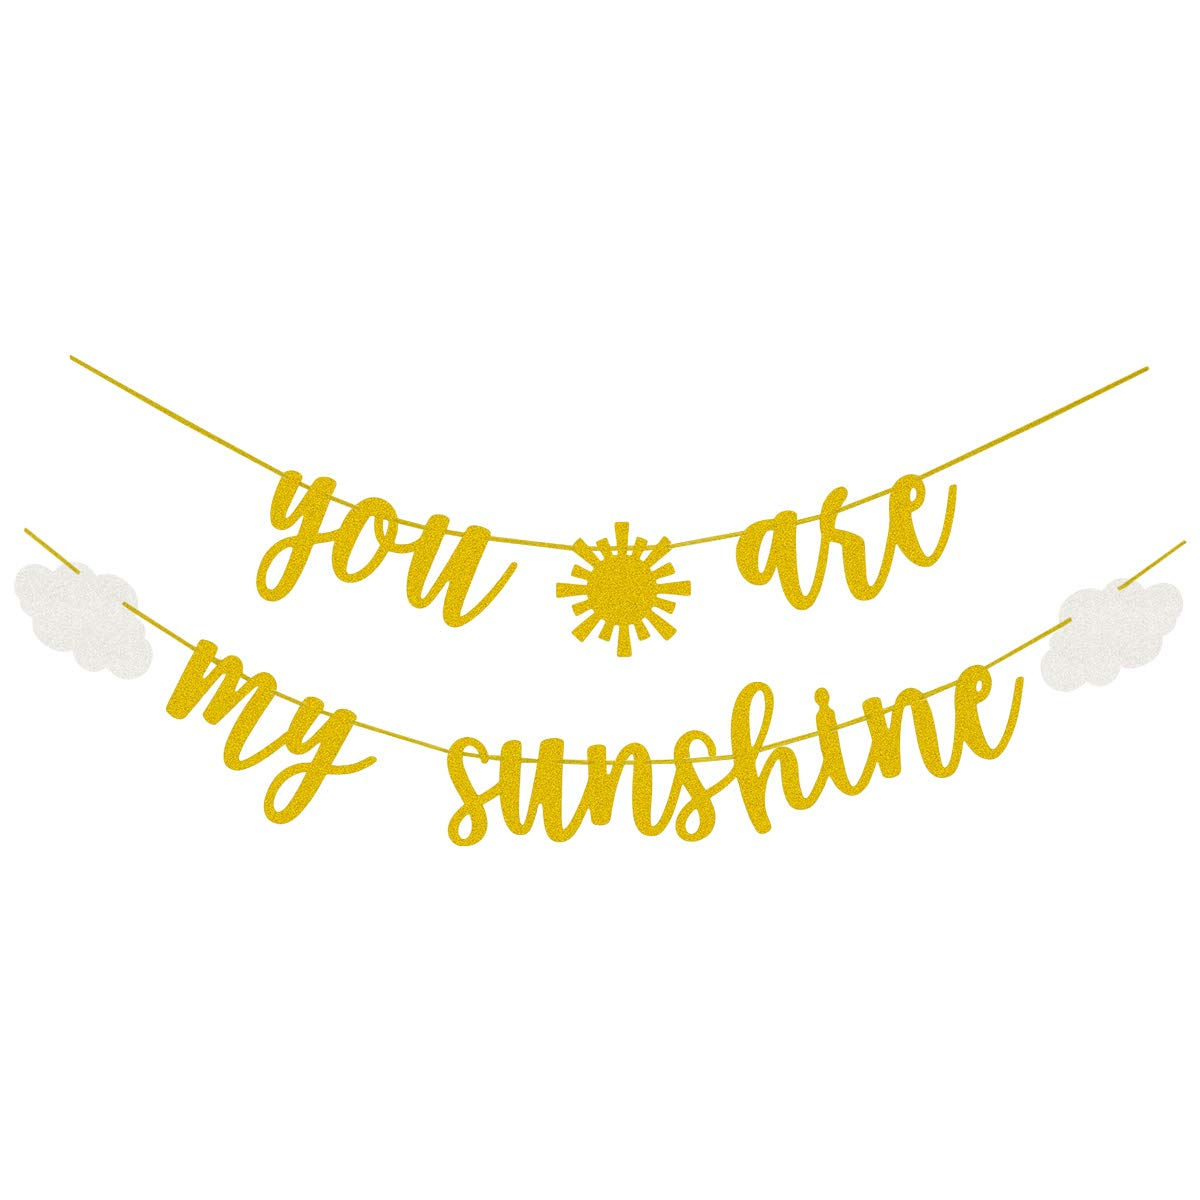 You Are My Sunshine Gold Glitter Banner with Sun and Clouds for Baby Shower Kid's Birthday Party Decorations by Fadilo